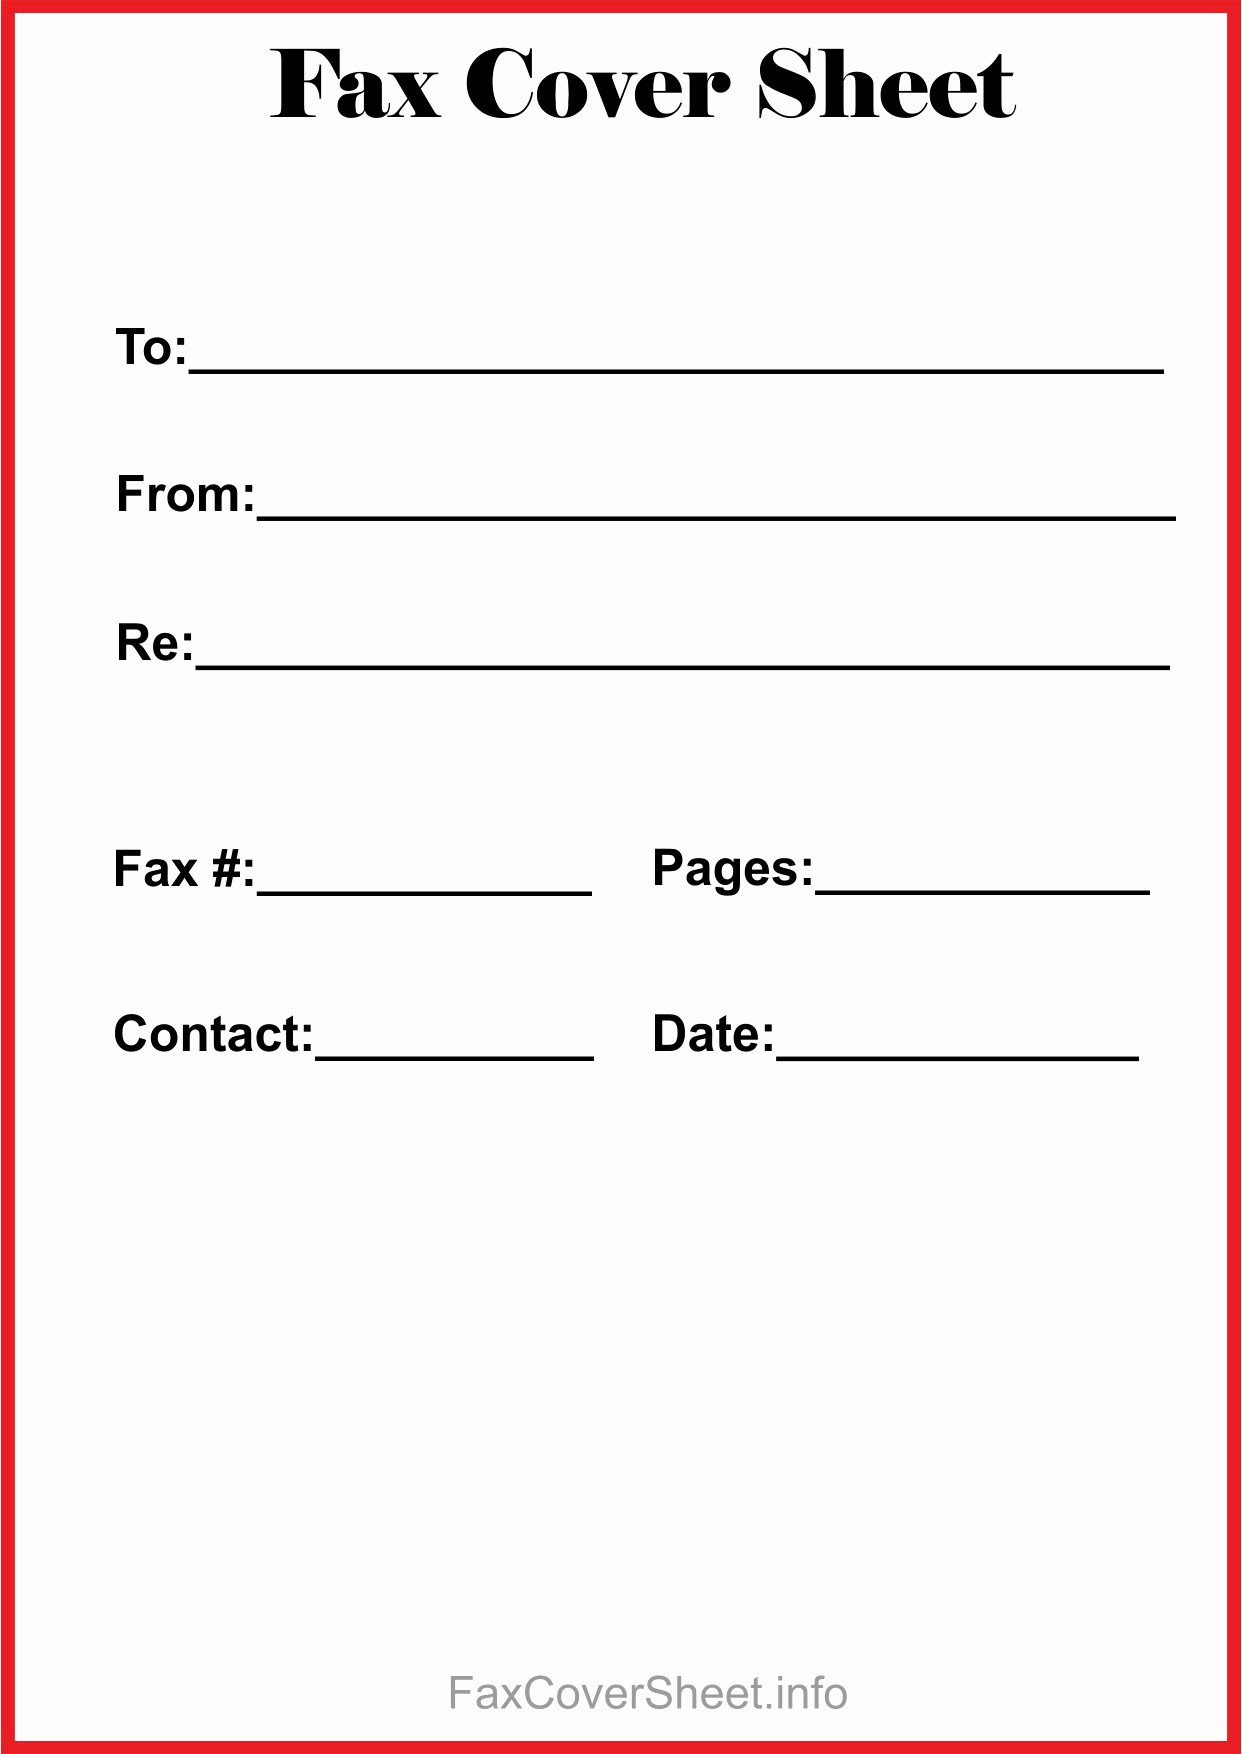 Printable Free Fax Cover Sheet Elegant Free Fax Cover Sheet Template Download